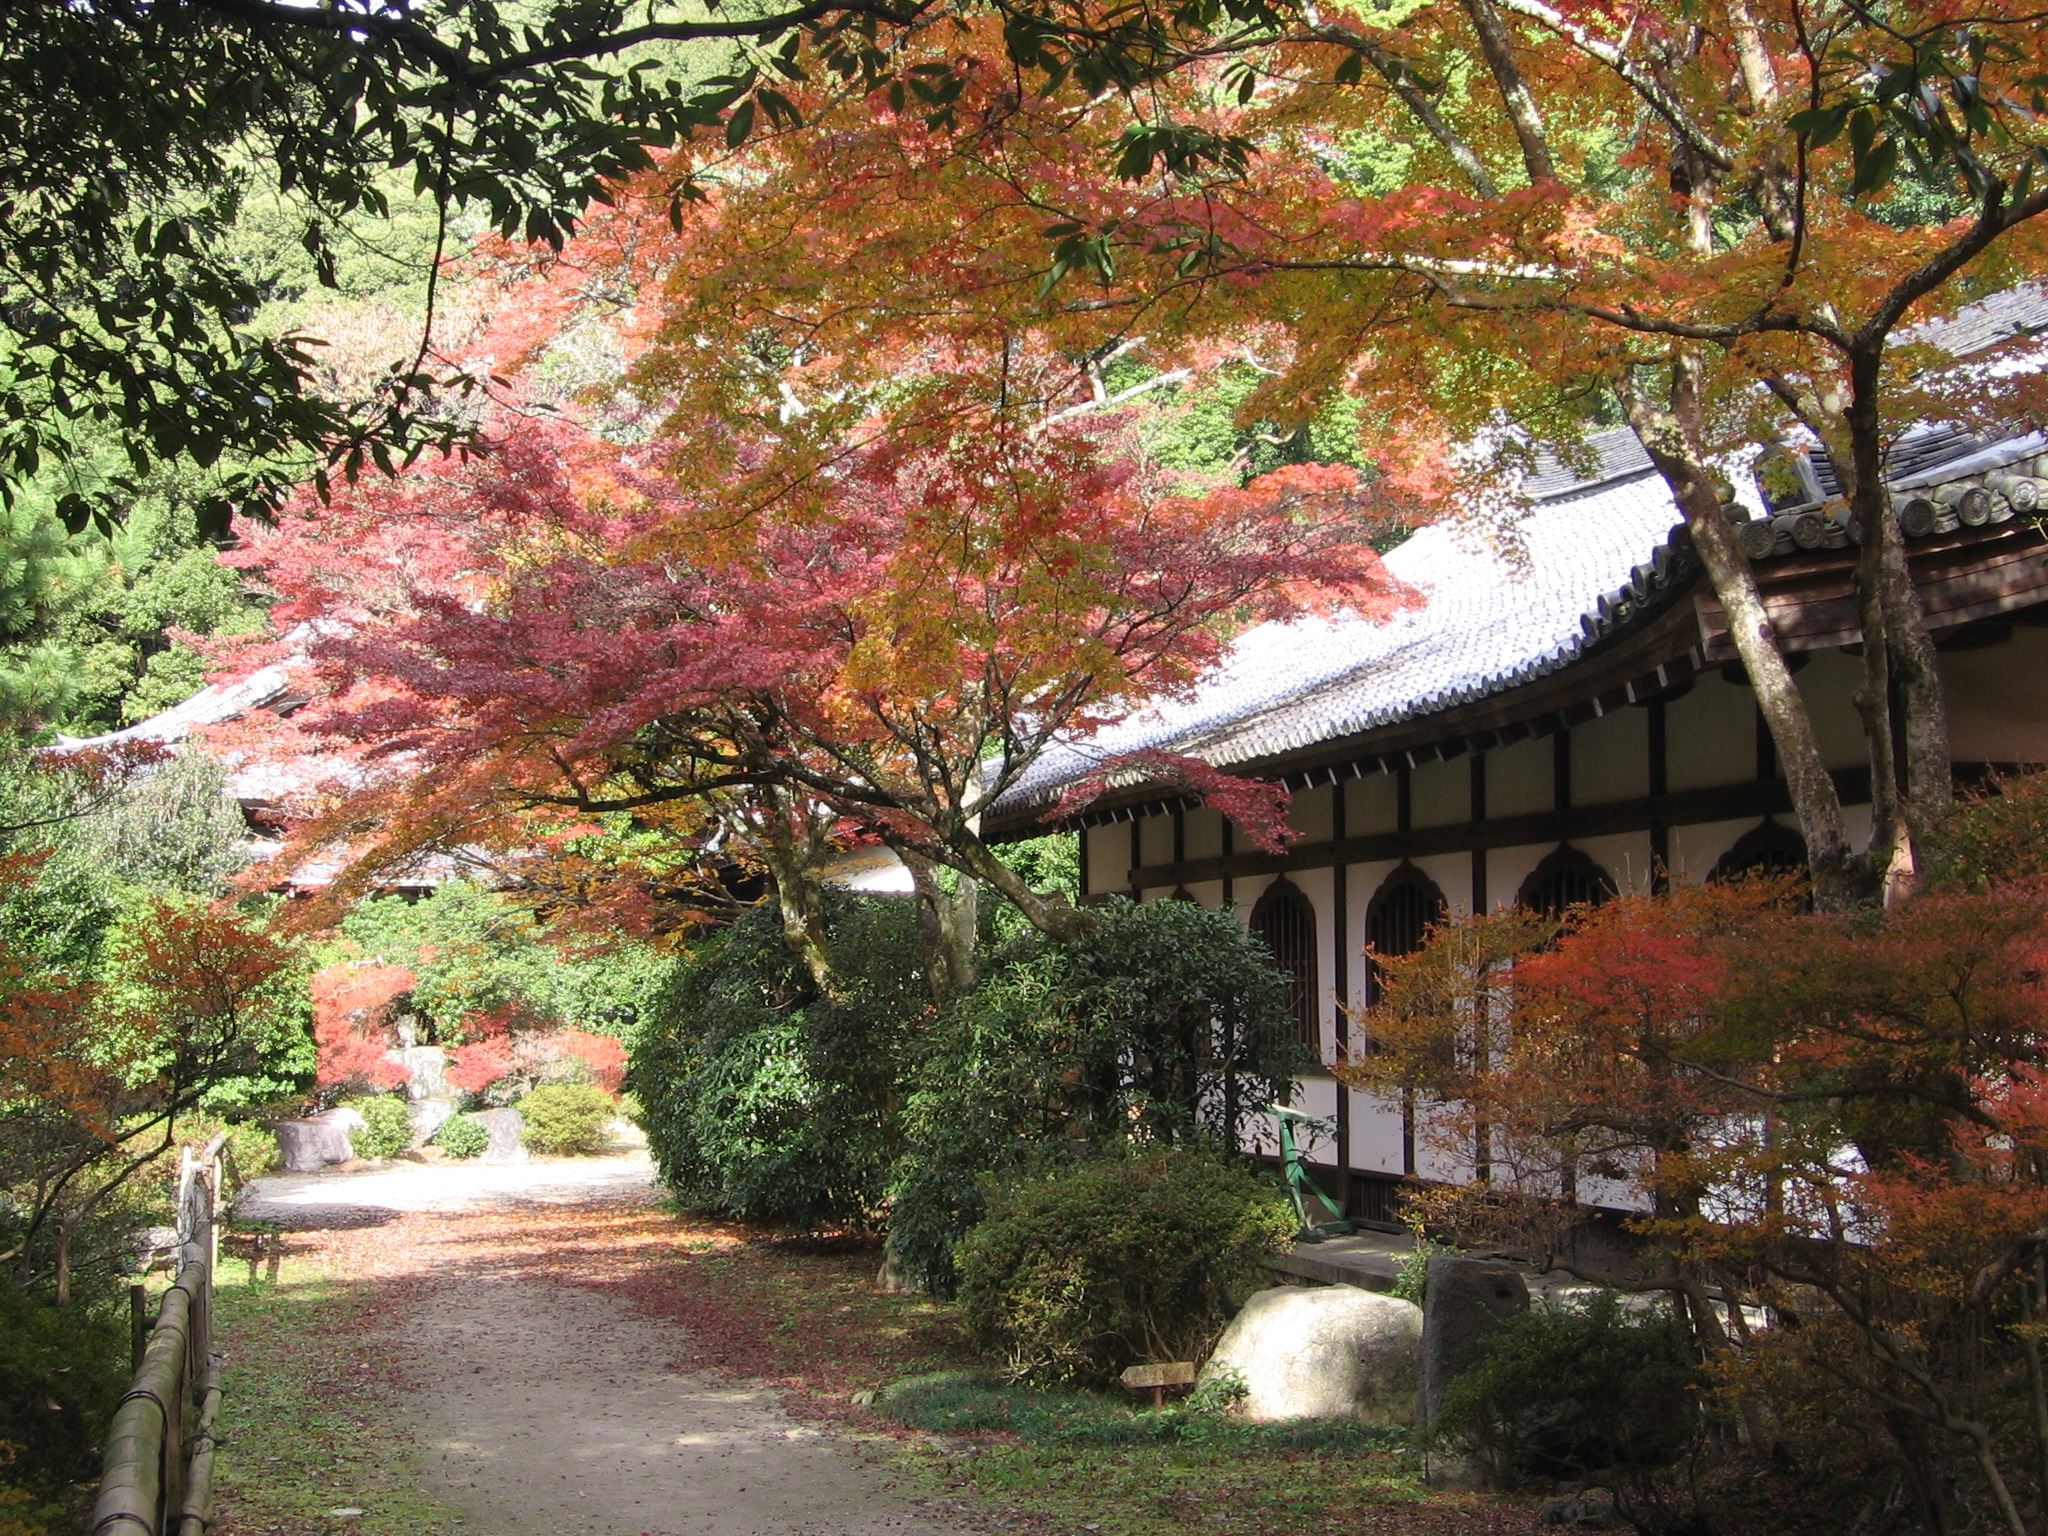 Japan Wallpapers and Images Japanese Temple Scenery Wallpapers 2048x1536